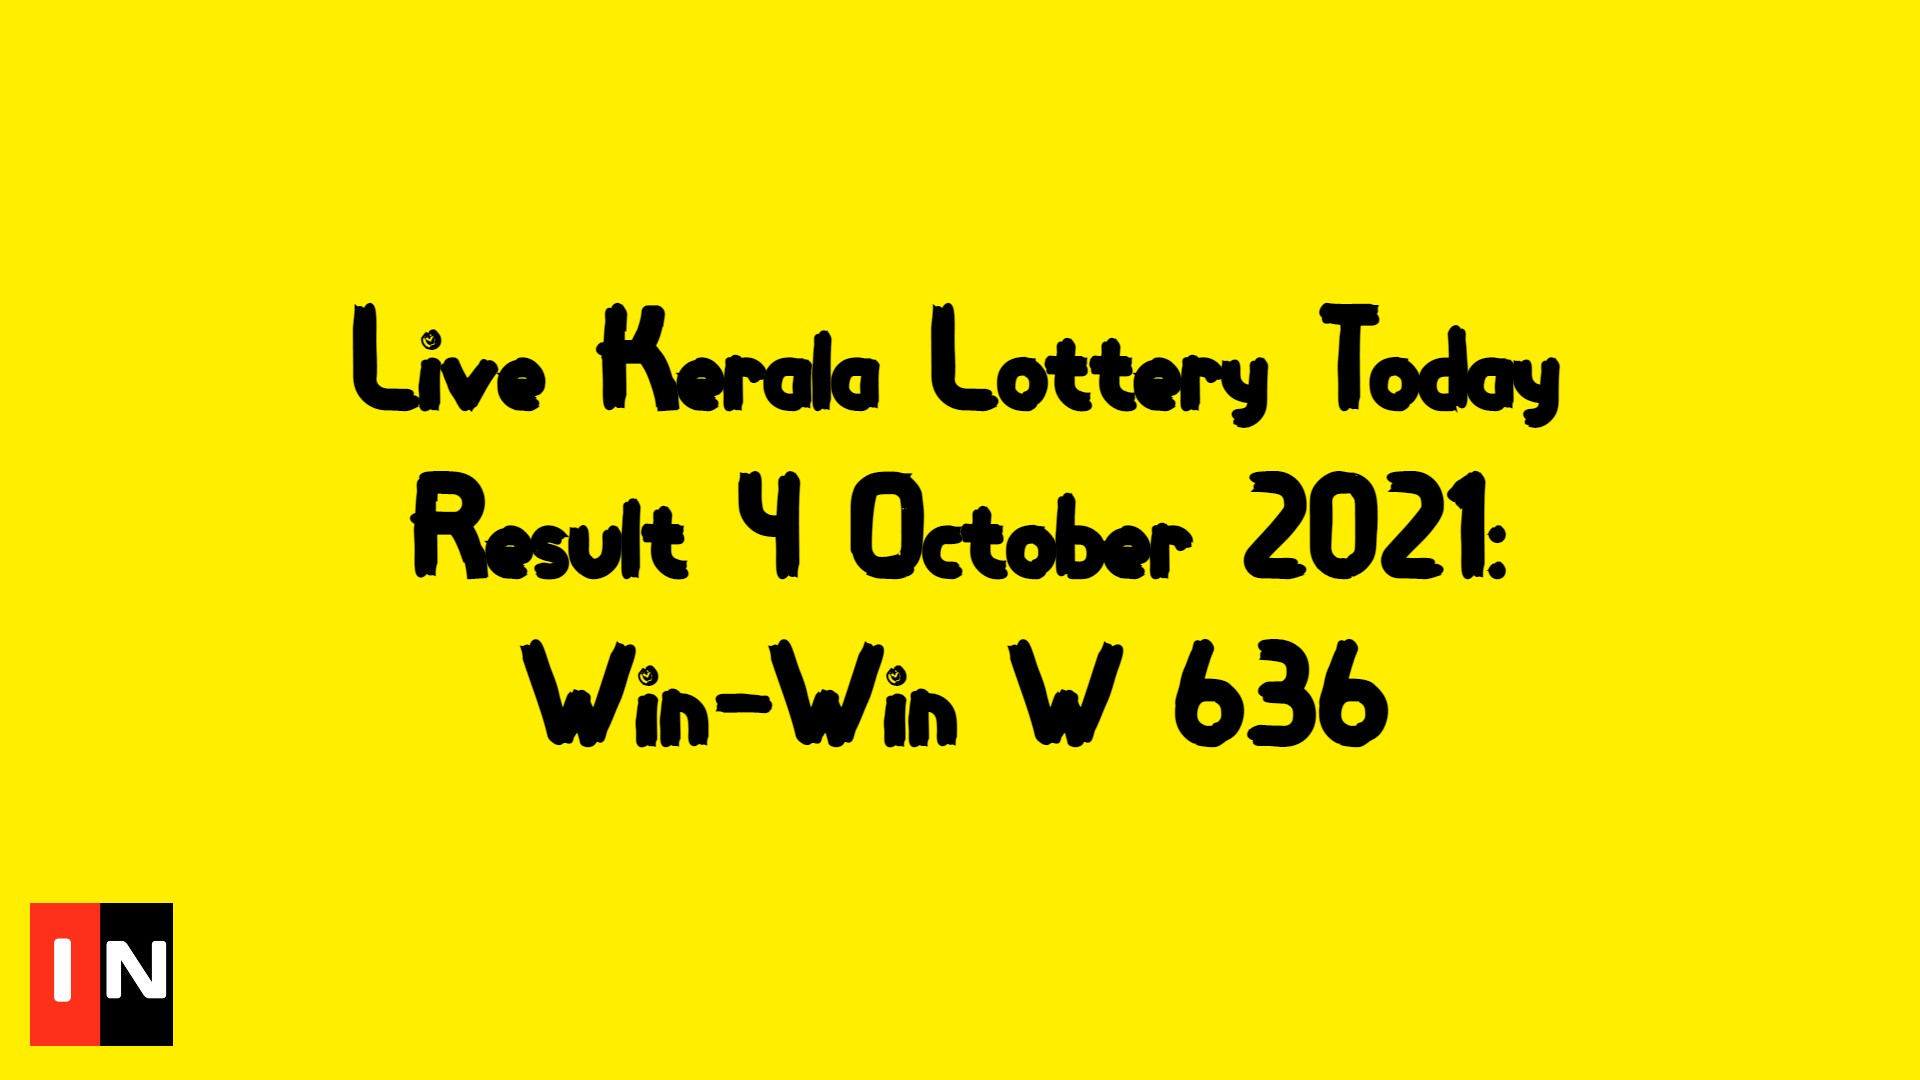 Live Kerala Lottery Today Result 4 October 2021: Win-Win W 636